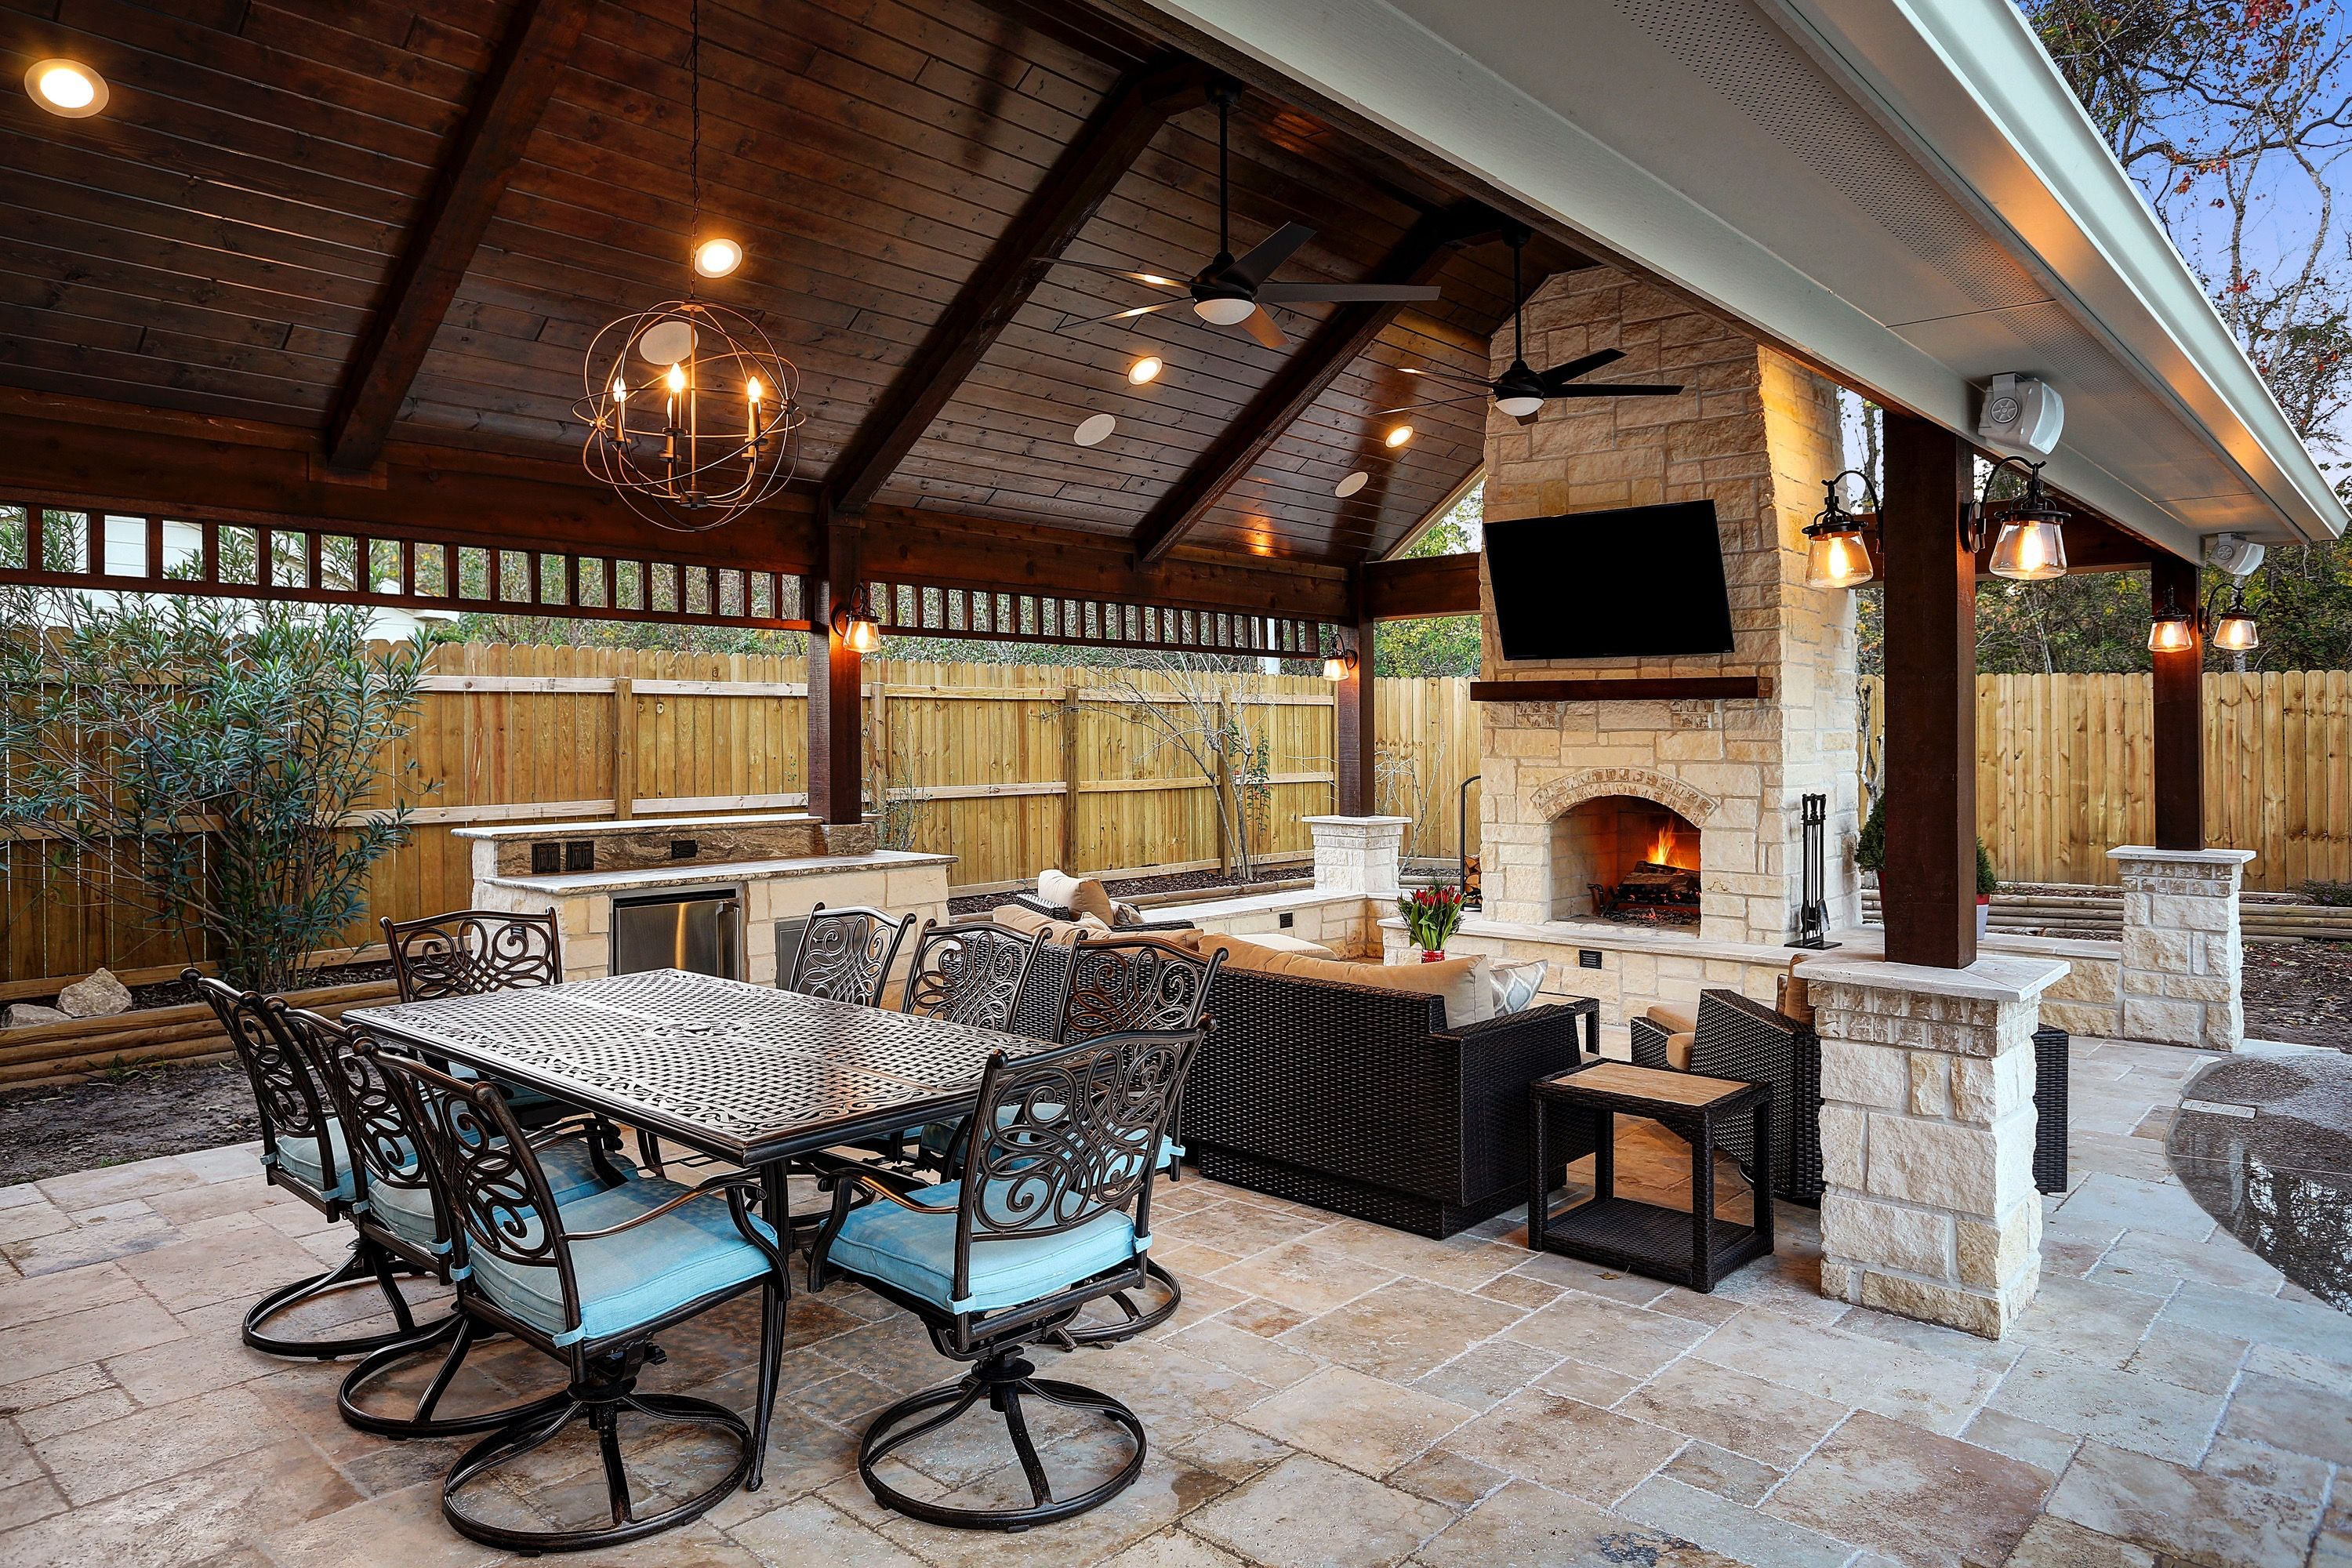 Gable Roof Patio Cover With Fireplace Kitchen And